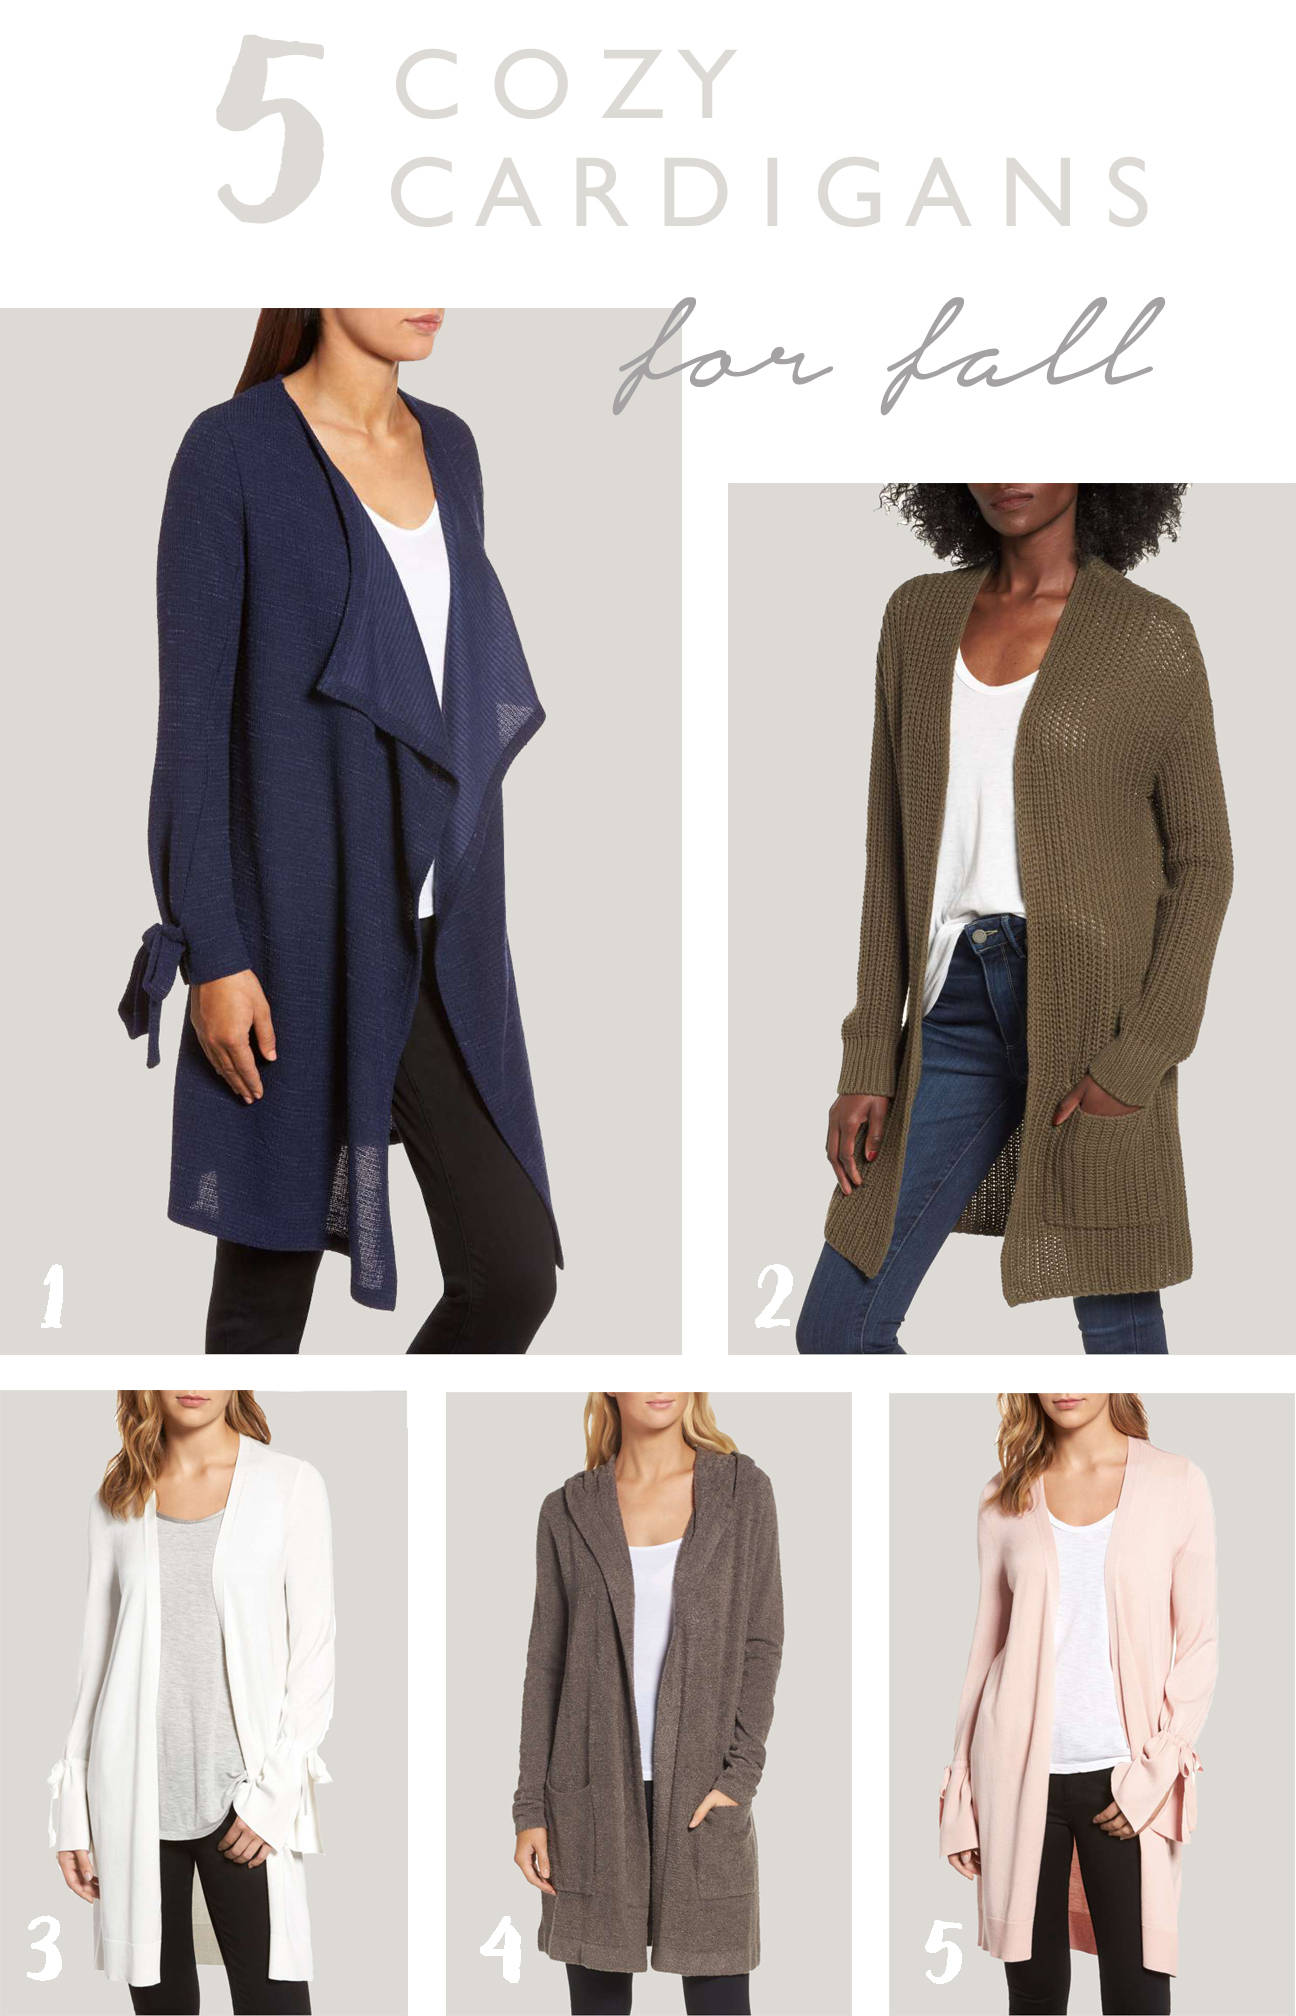 With Fall around the corner, its time to stock up on closet staples like cozy cardigans! Check out a few of my favorites here!